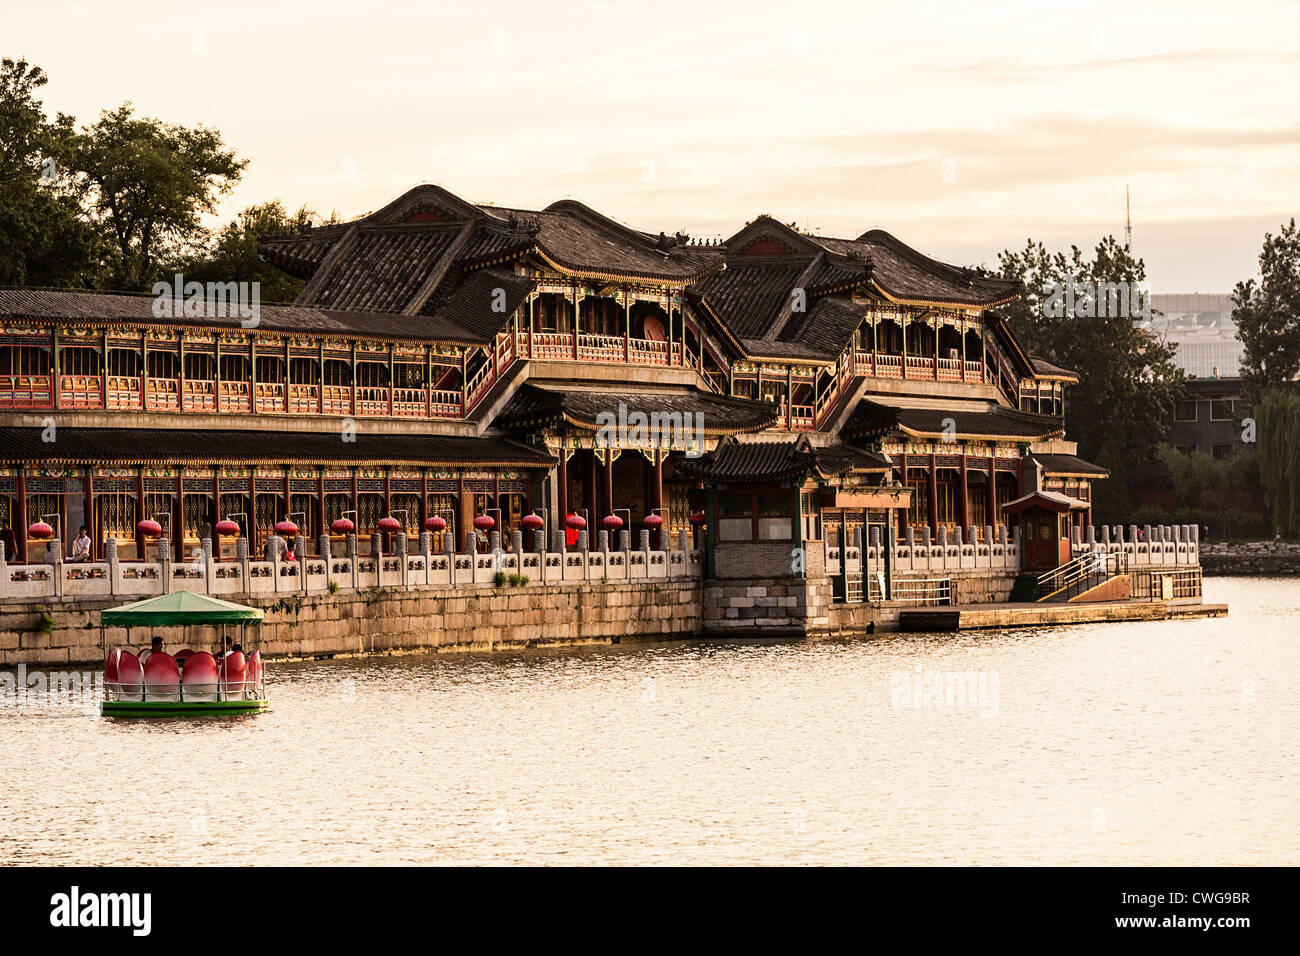 View at sunset of the decorative colonnade in Beihai Park in Beijing, China Stock Photo